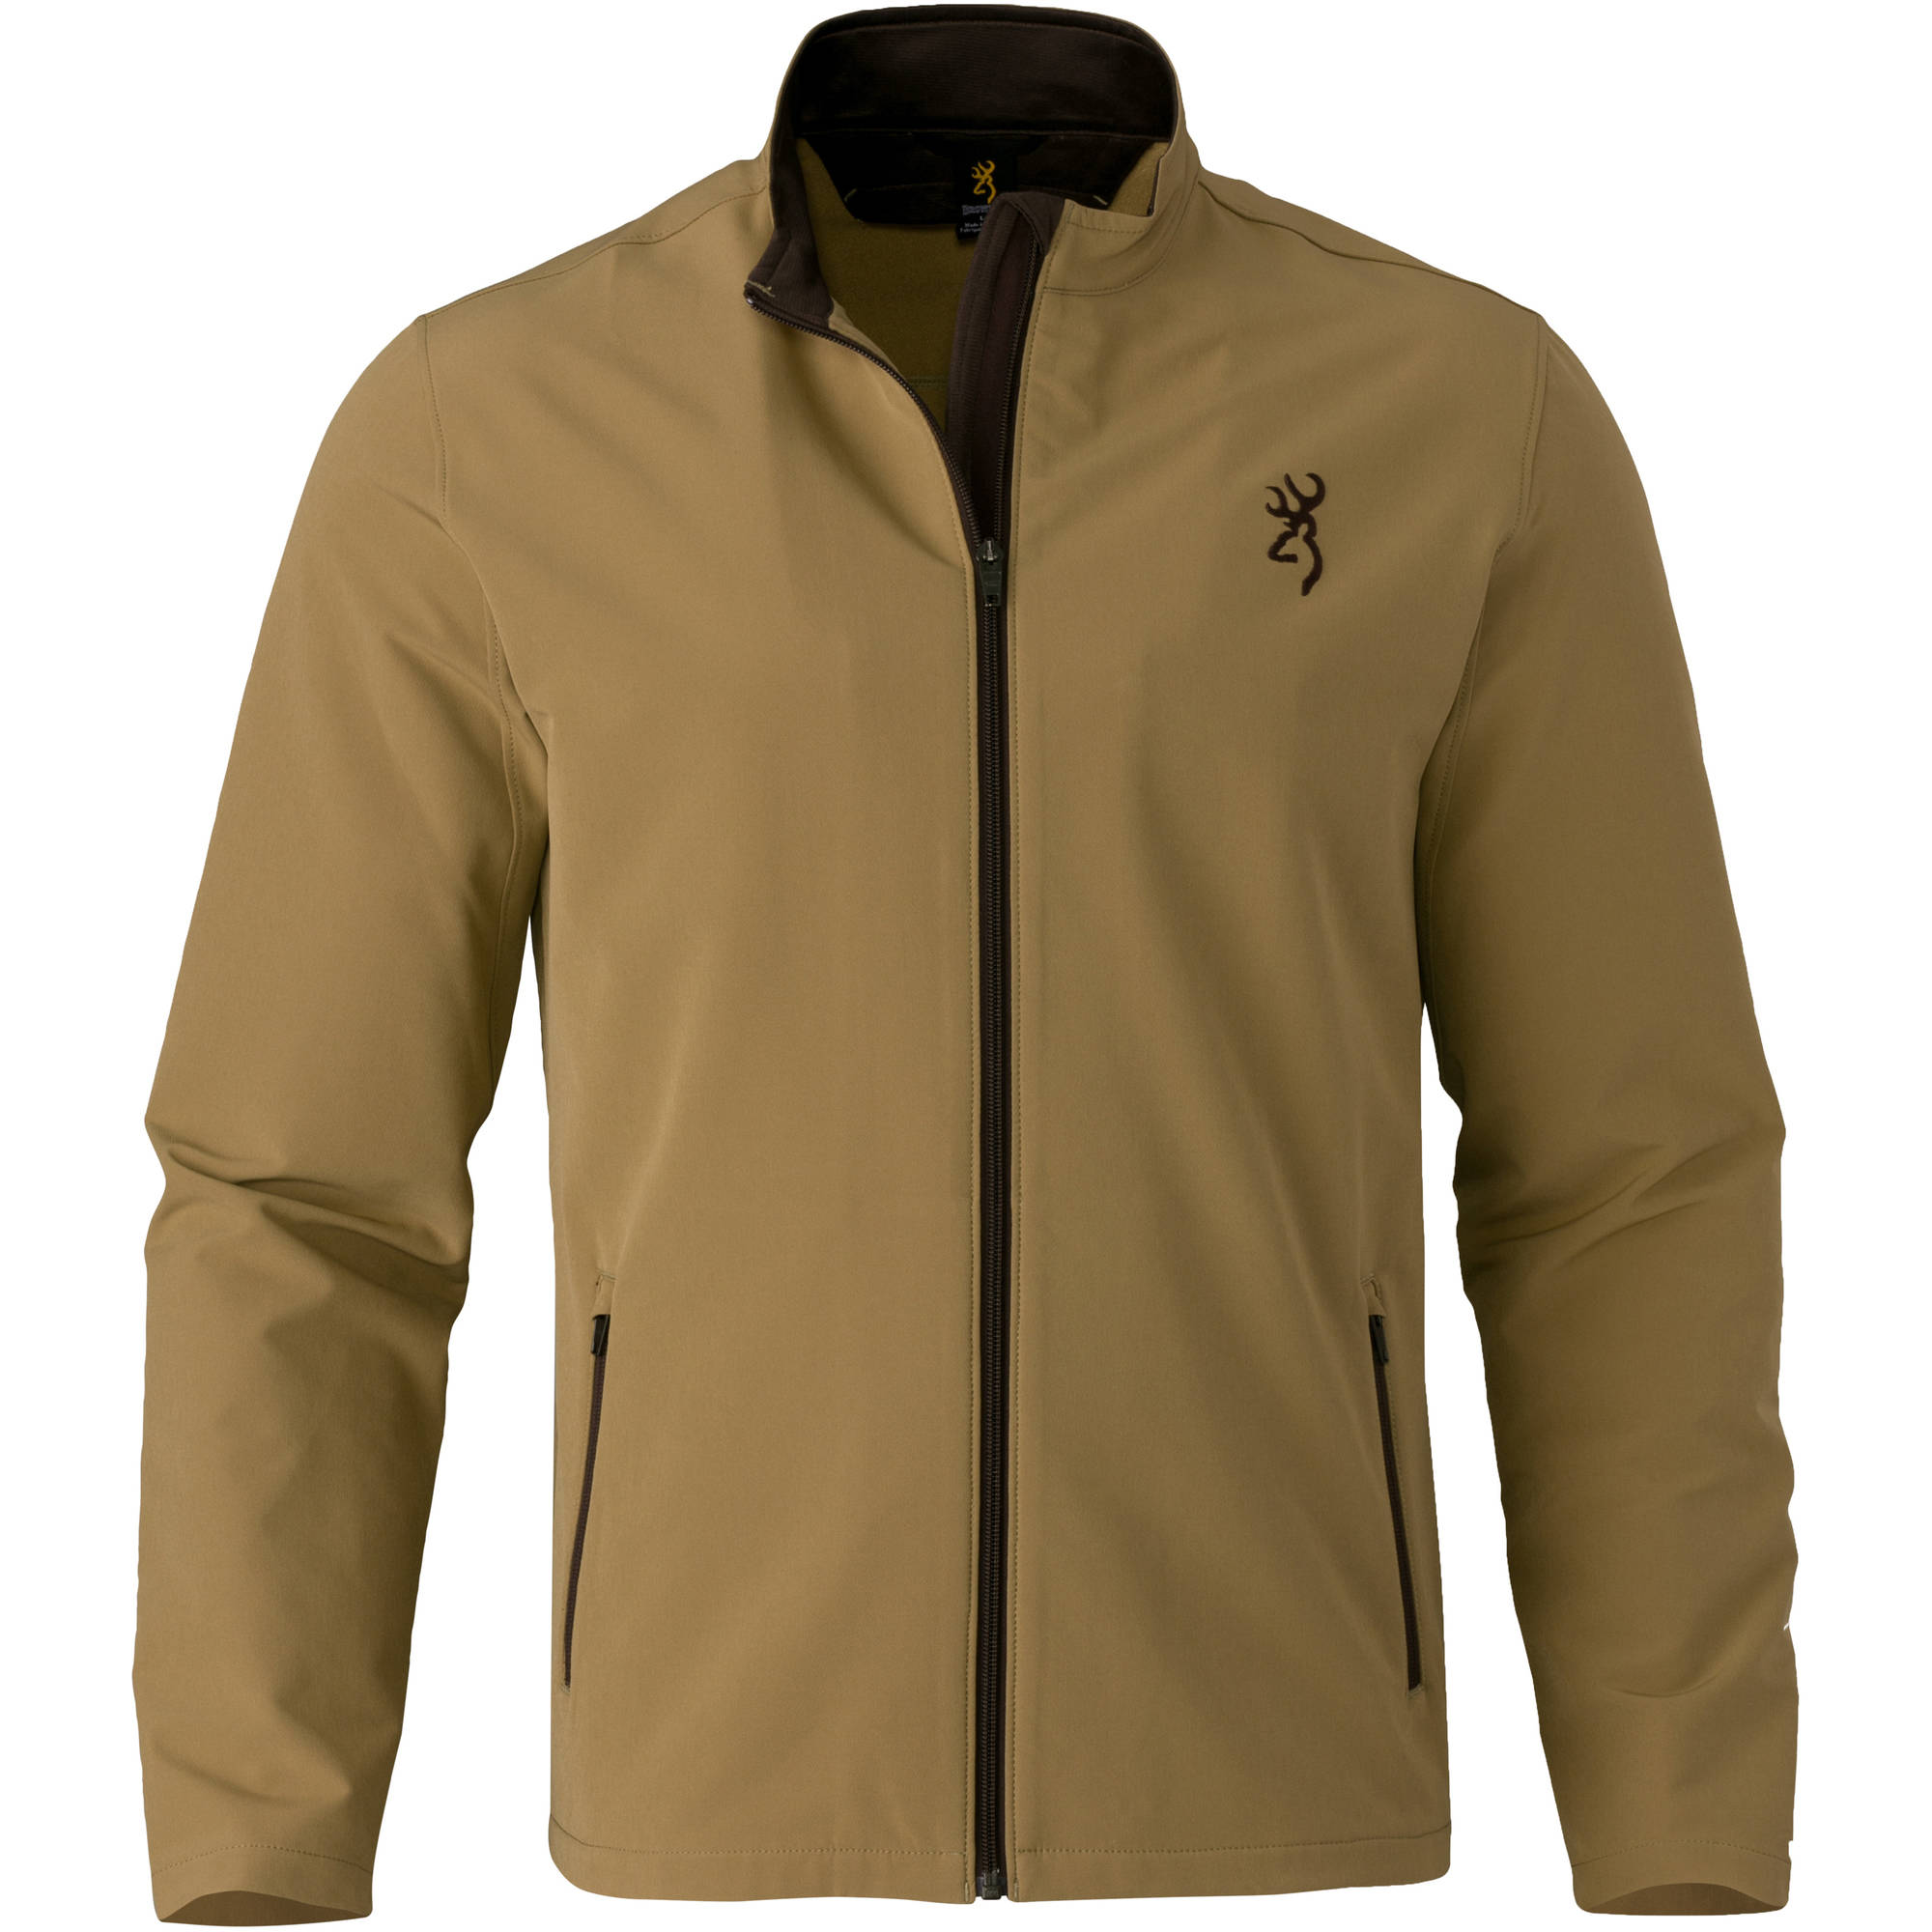 Browning Hell's Canyon Speed Javelin Jacket, Tan